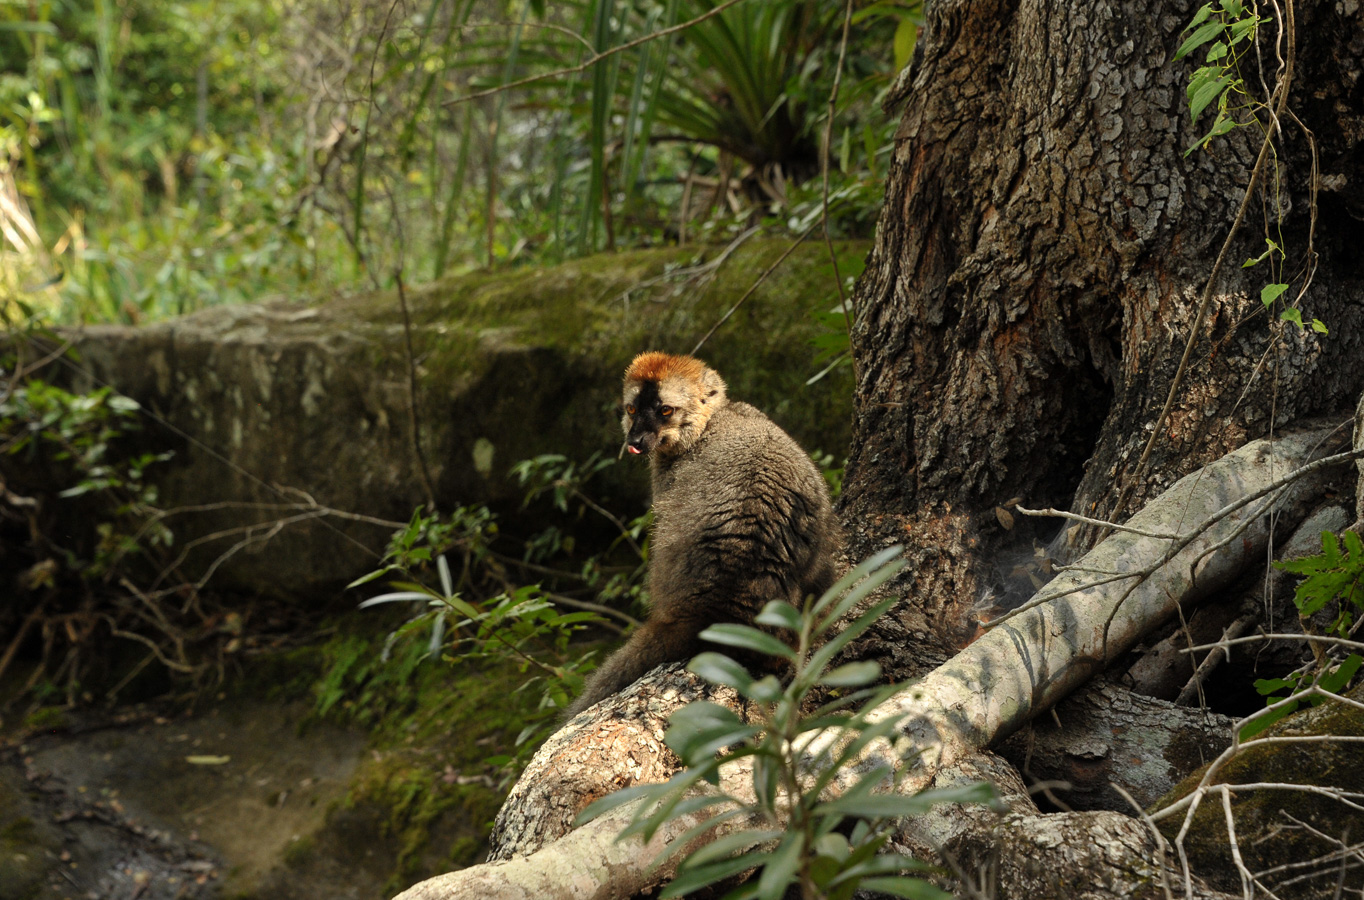 Red-fronted lemur [Eulemur rufifrons]